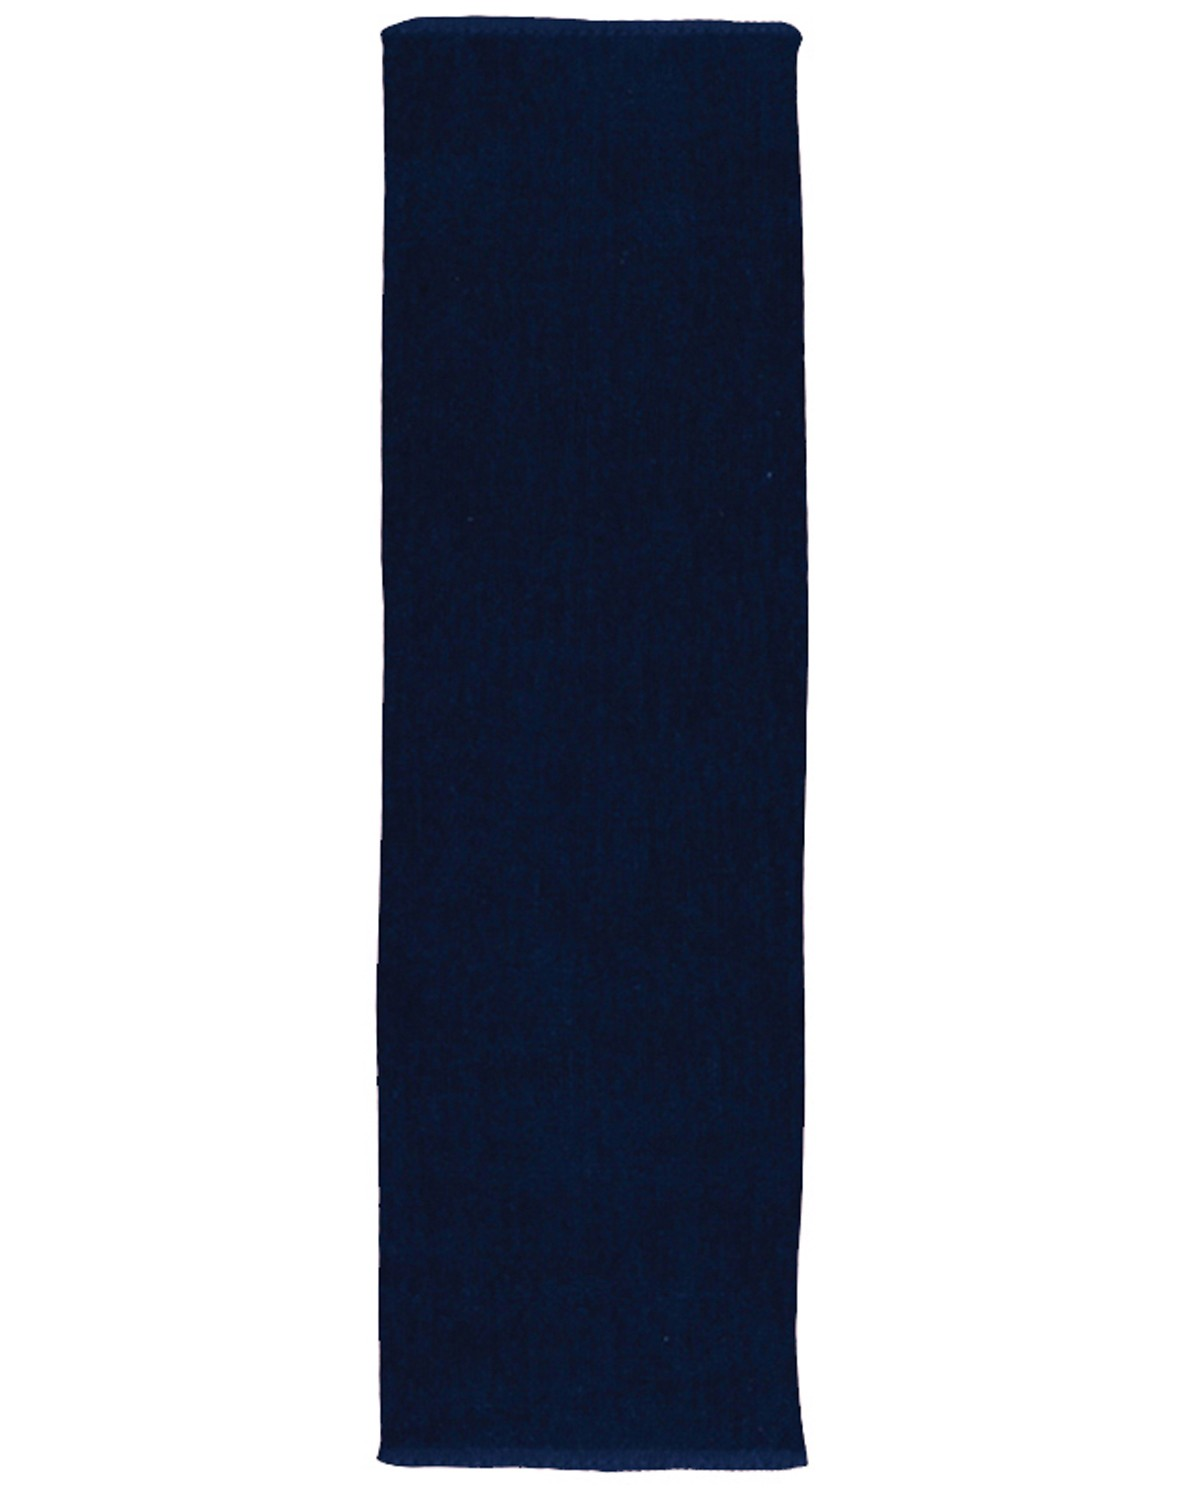 FT42CF Pro Towels NAVY